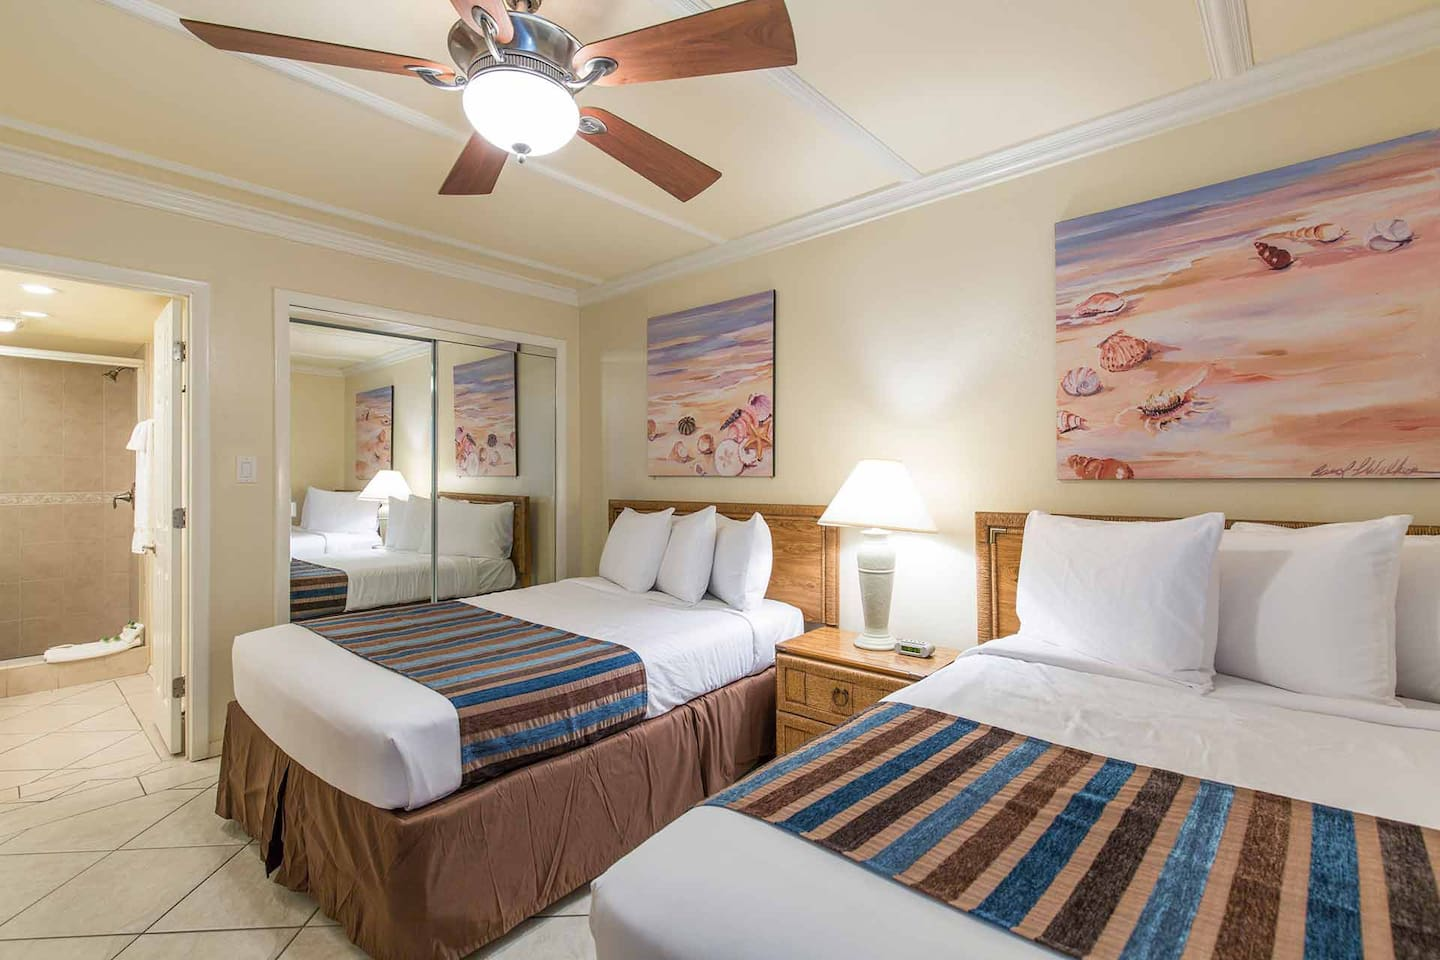 The guest bedroom has two full-size beds.